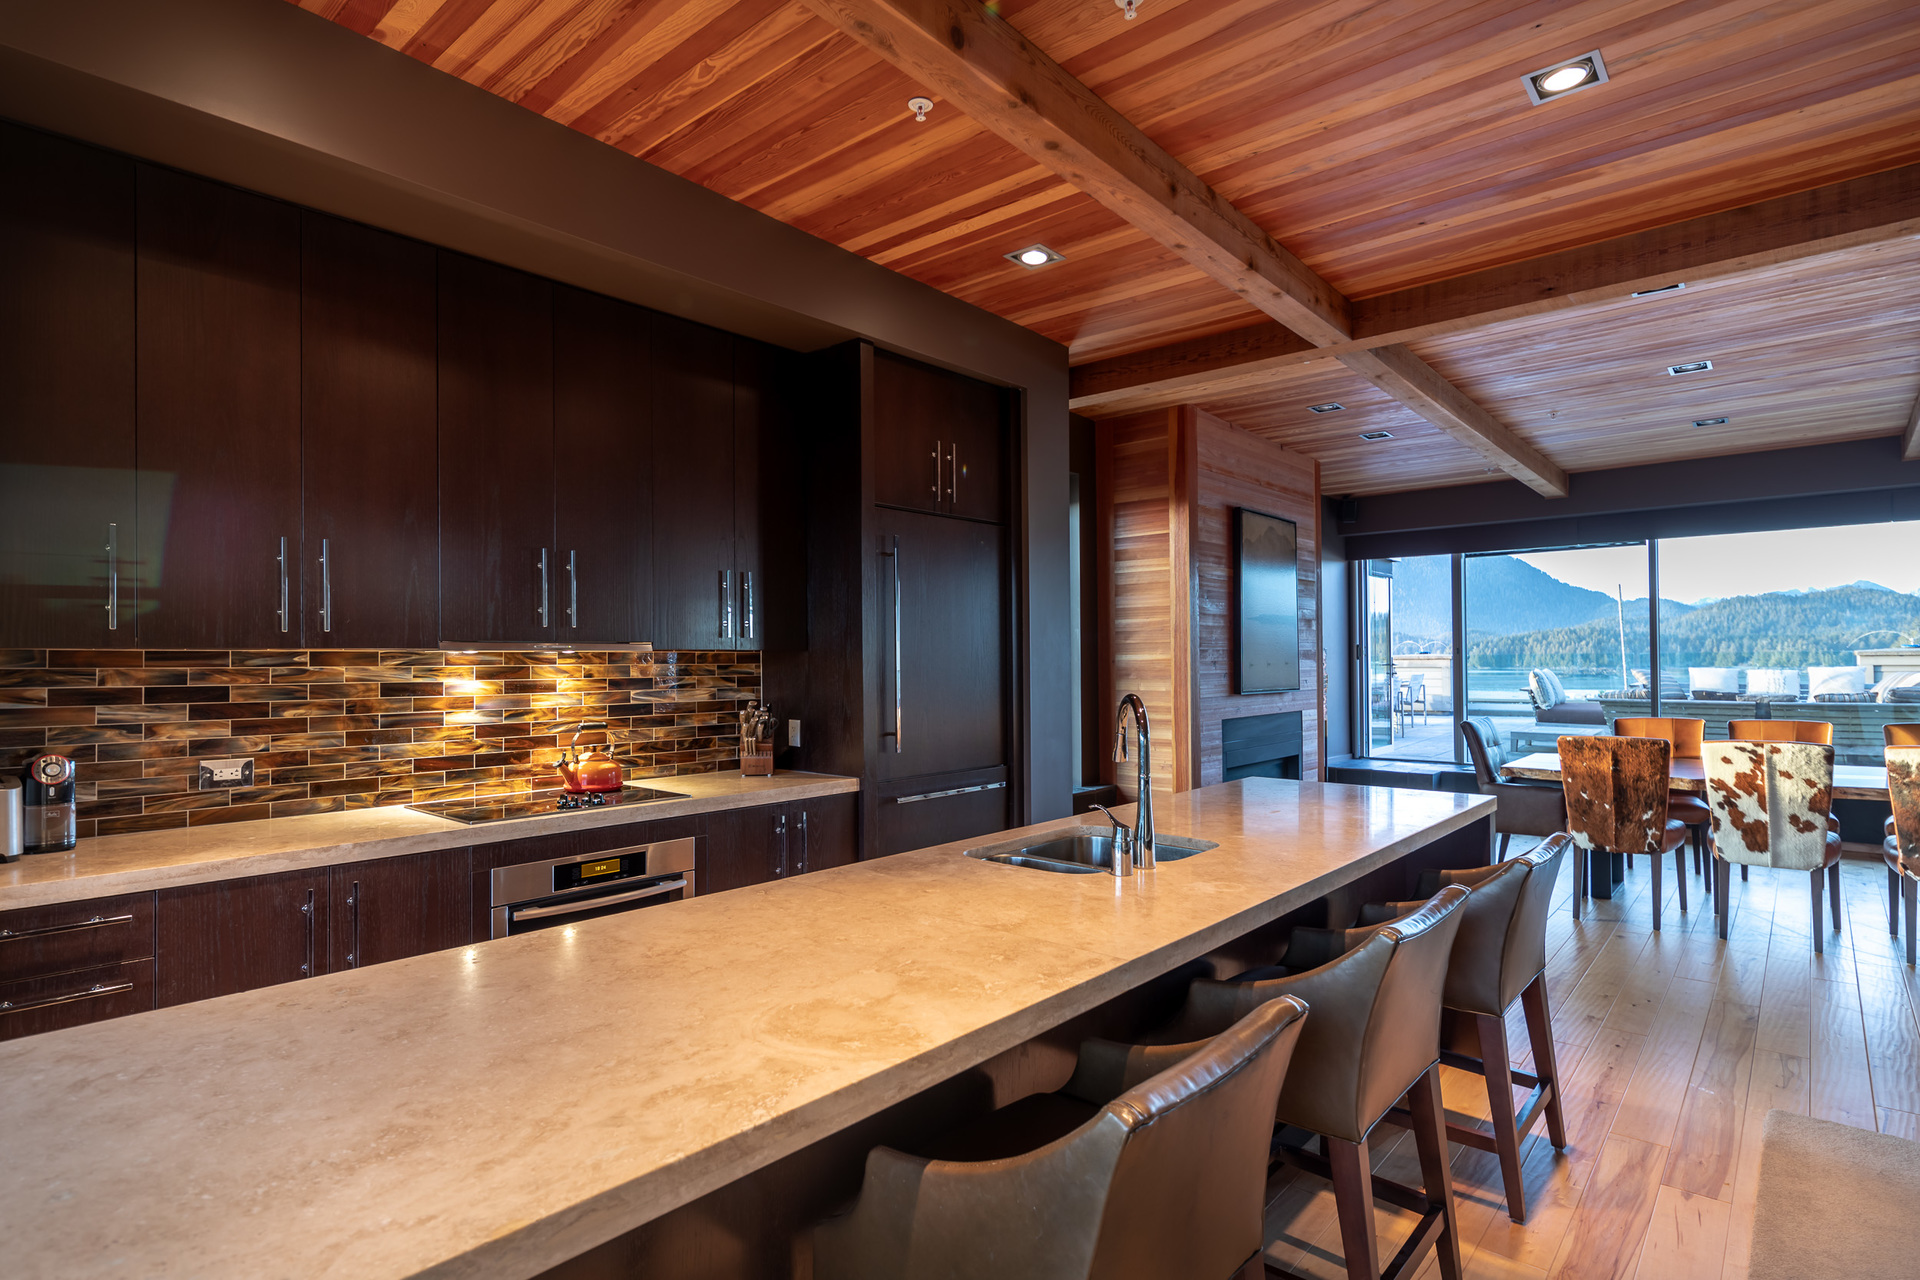 Kitchen & Bar at 401 - 368 Main Street, Tofino Tofino, Vancouver Island